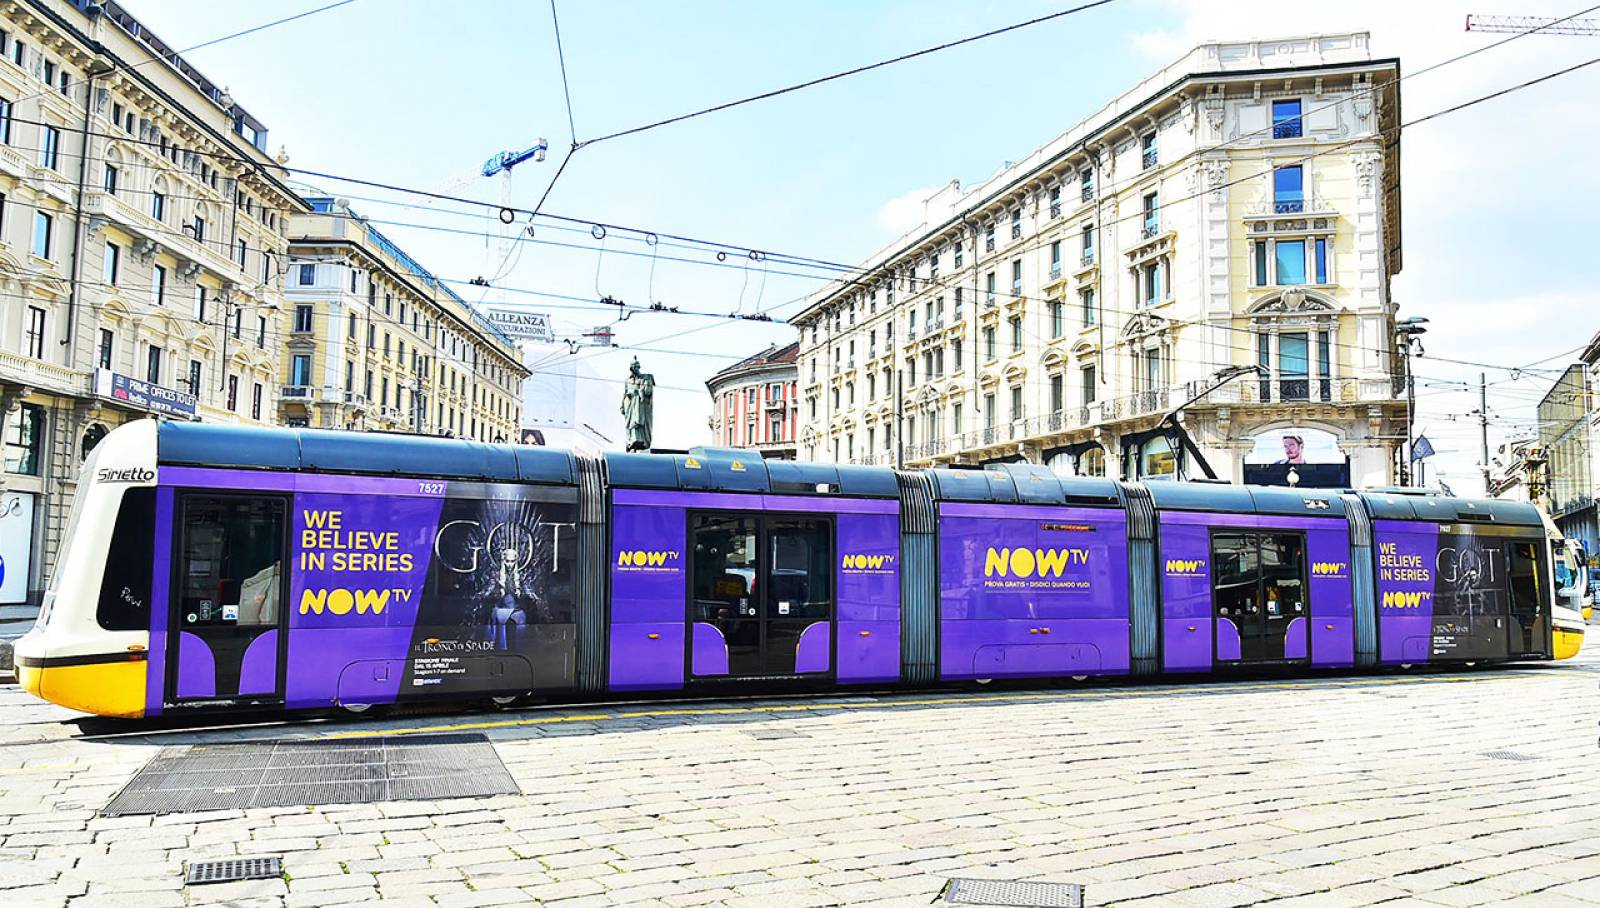 IGPDecaux OOH Advertising Full-Wrap in Milan for Game of Thrones Now TV